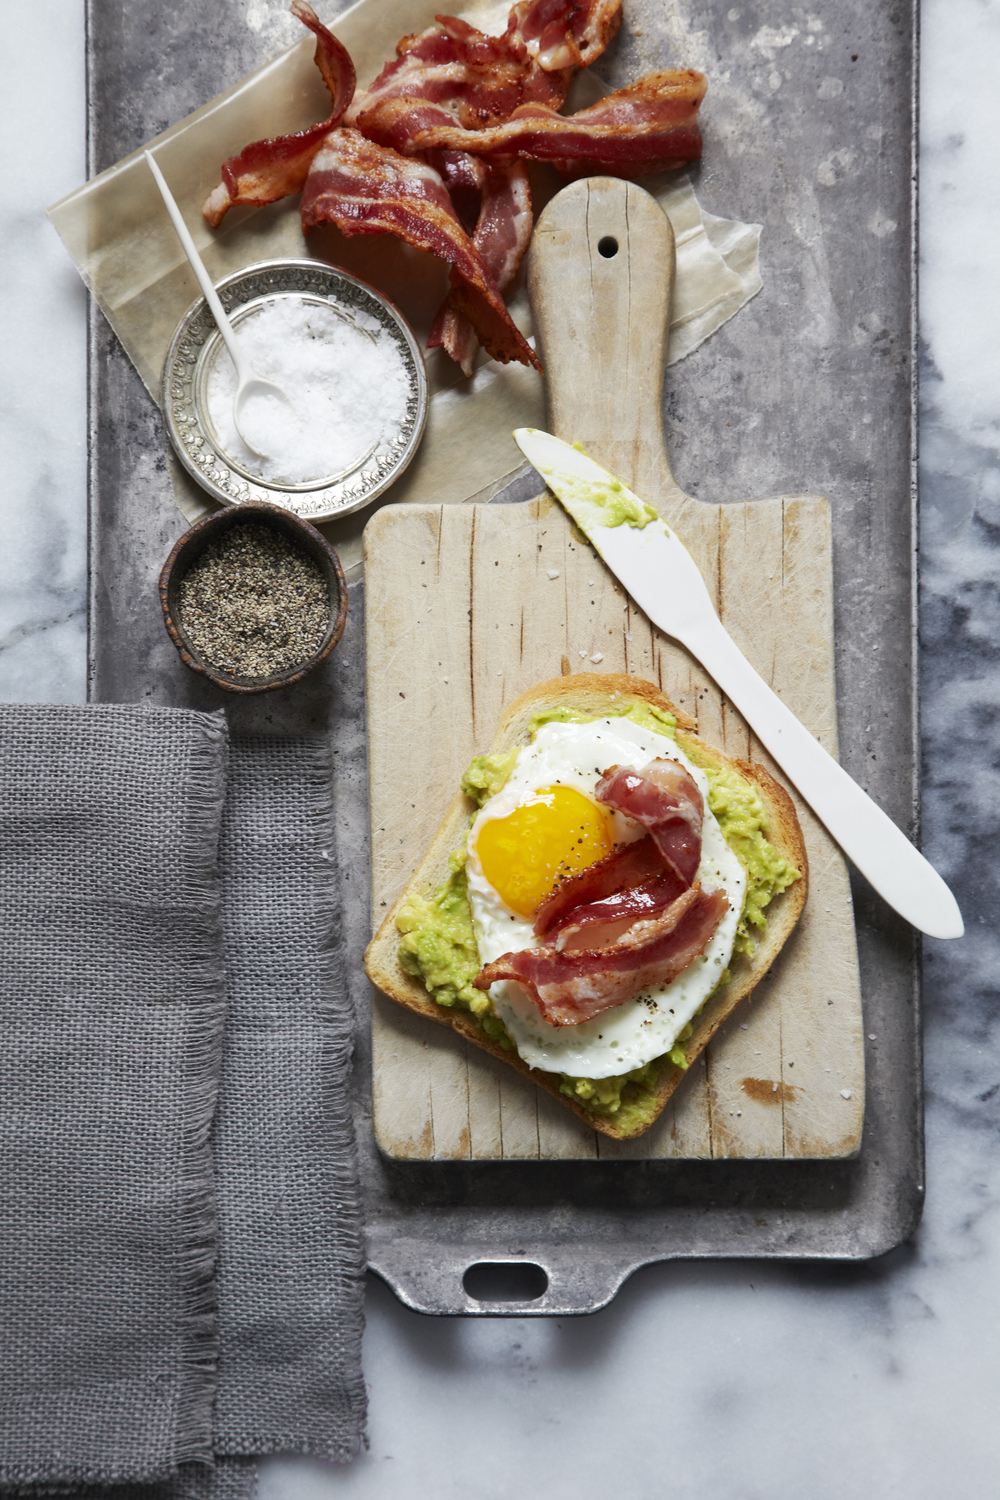 Avocado, Egg and Bacon is the stuff DREAM TEAMS are made of!